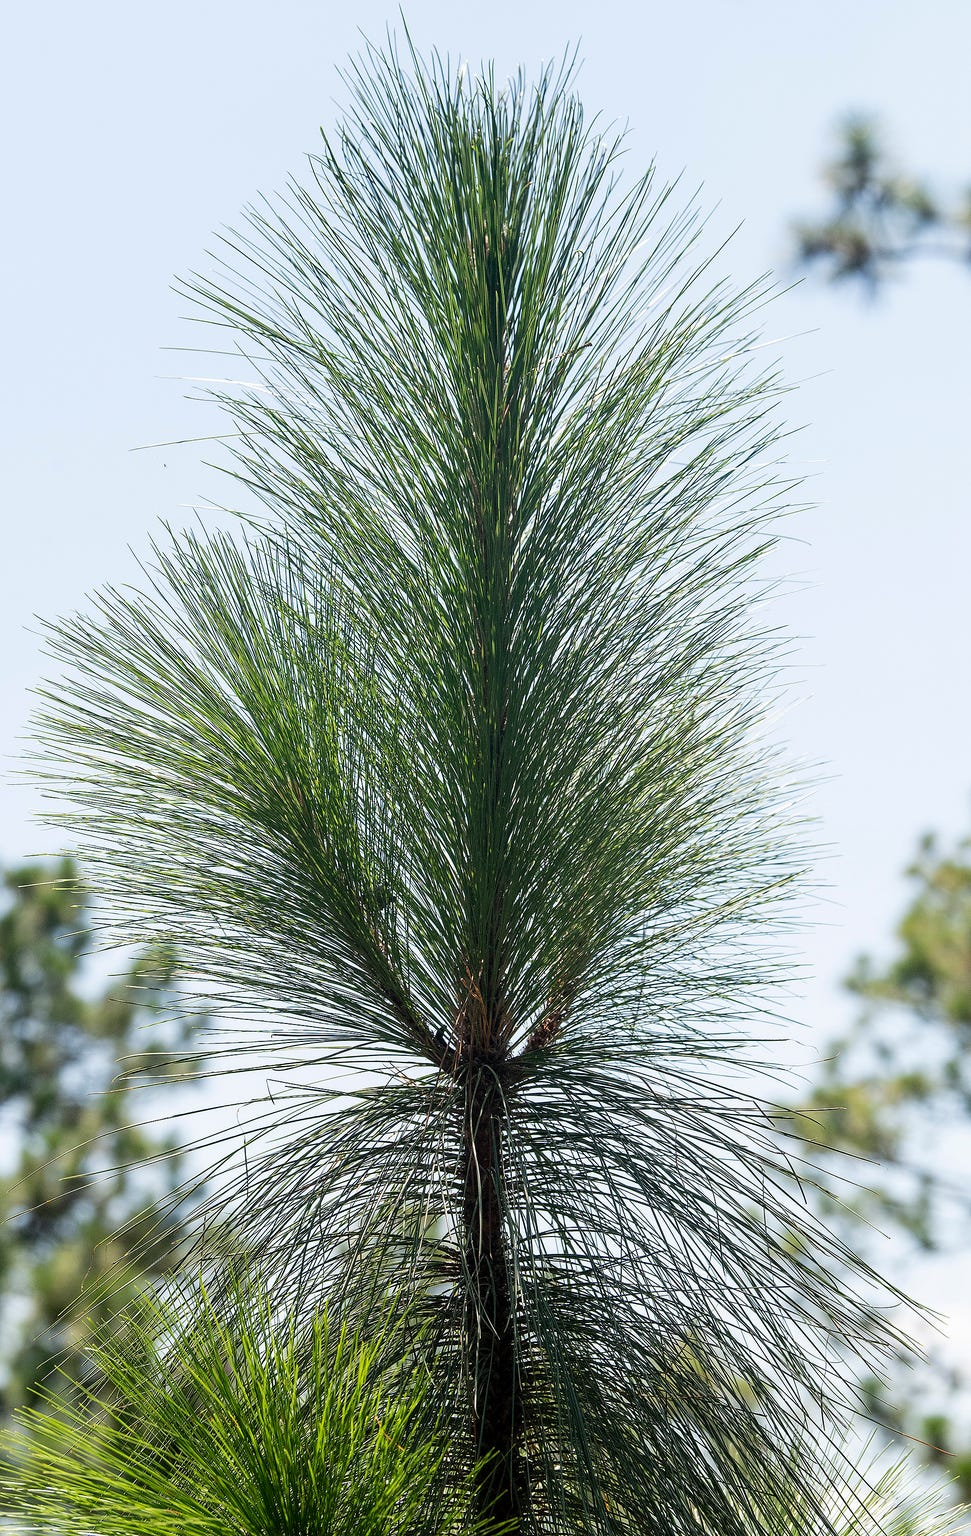 A young longleaf pine tree on the property of John Pirtle, of Pirtle Forestry Services, near Billingsley, Ala., on Thursday August 15, 2019.